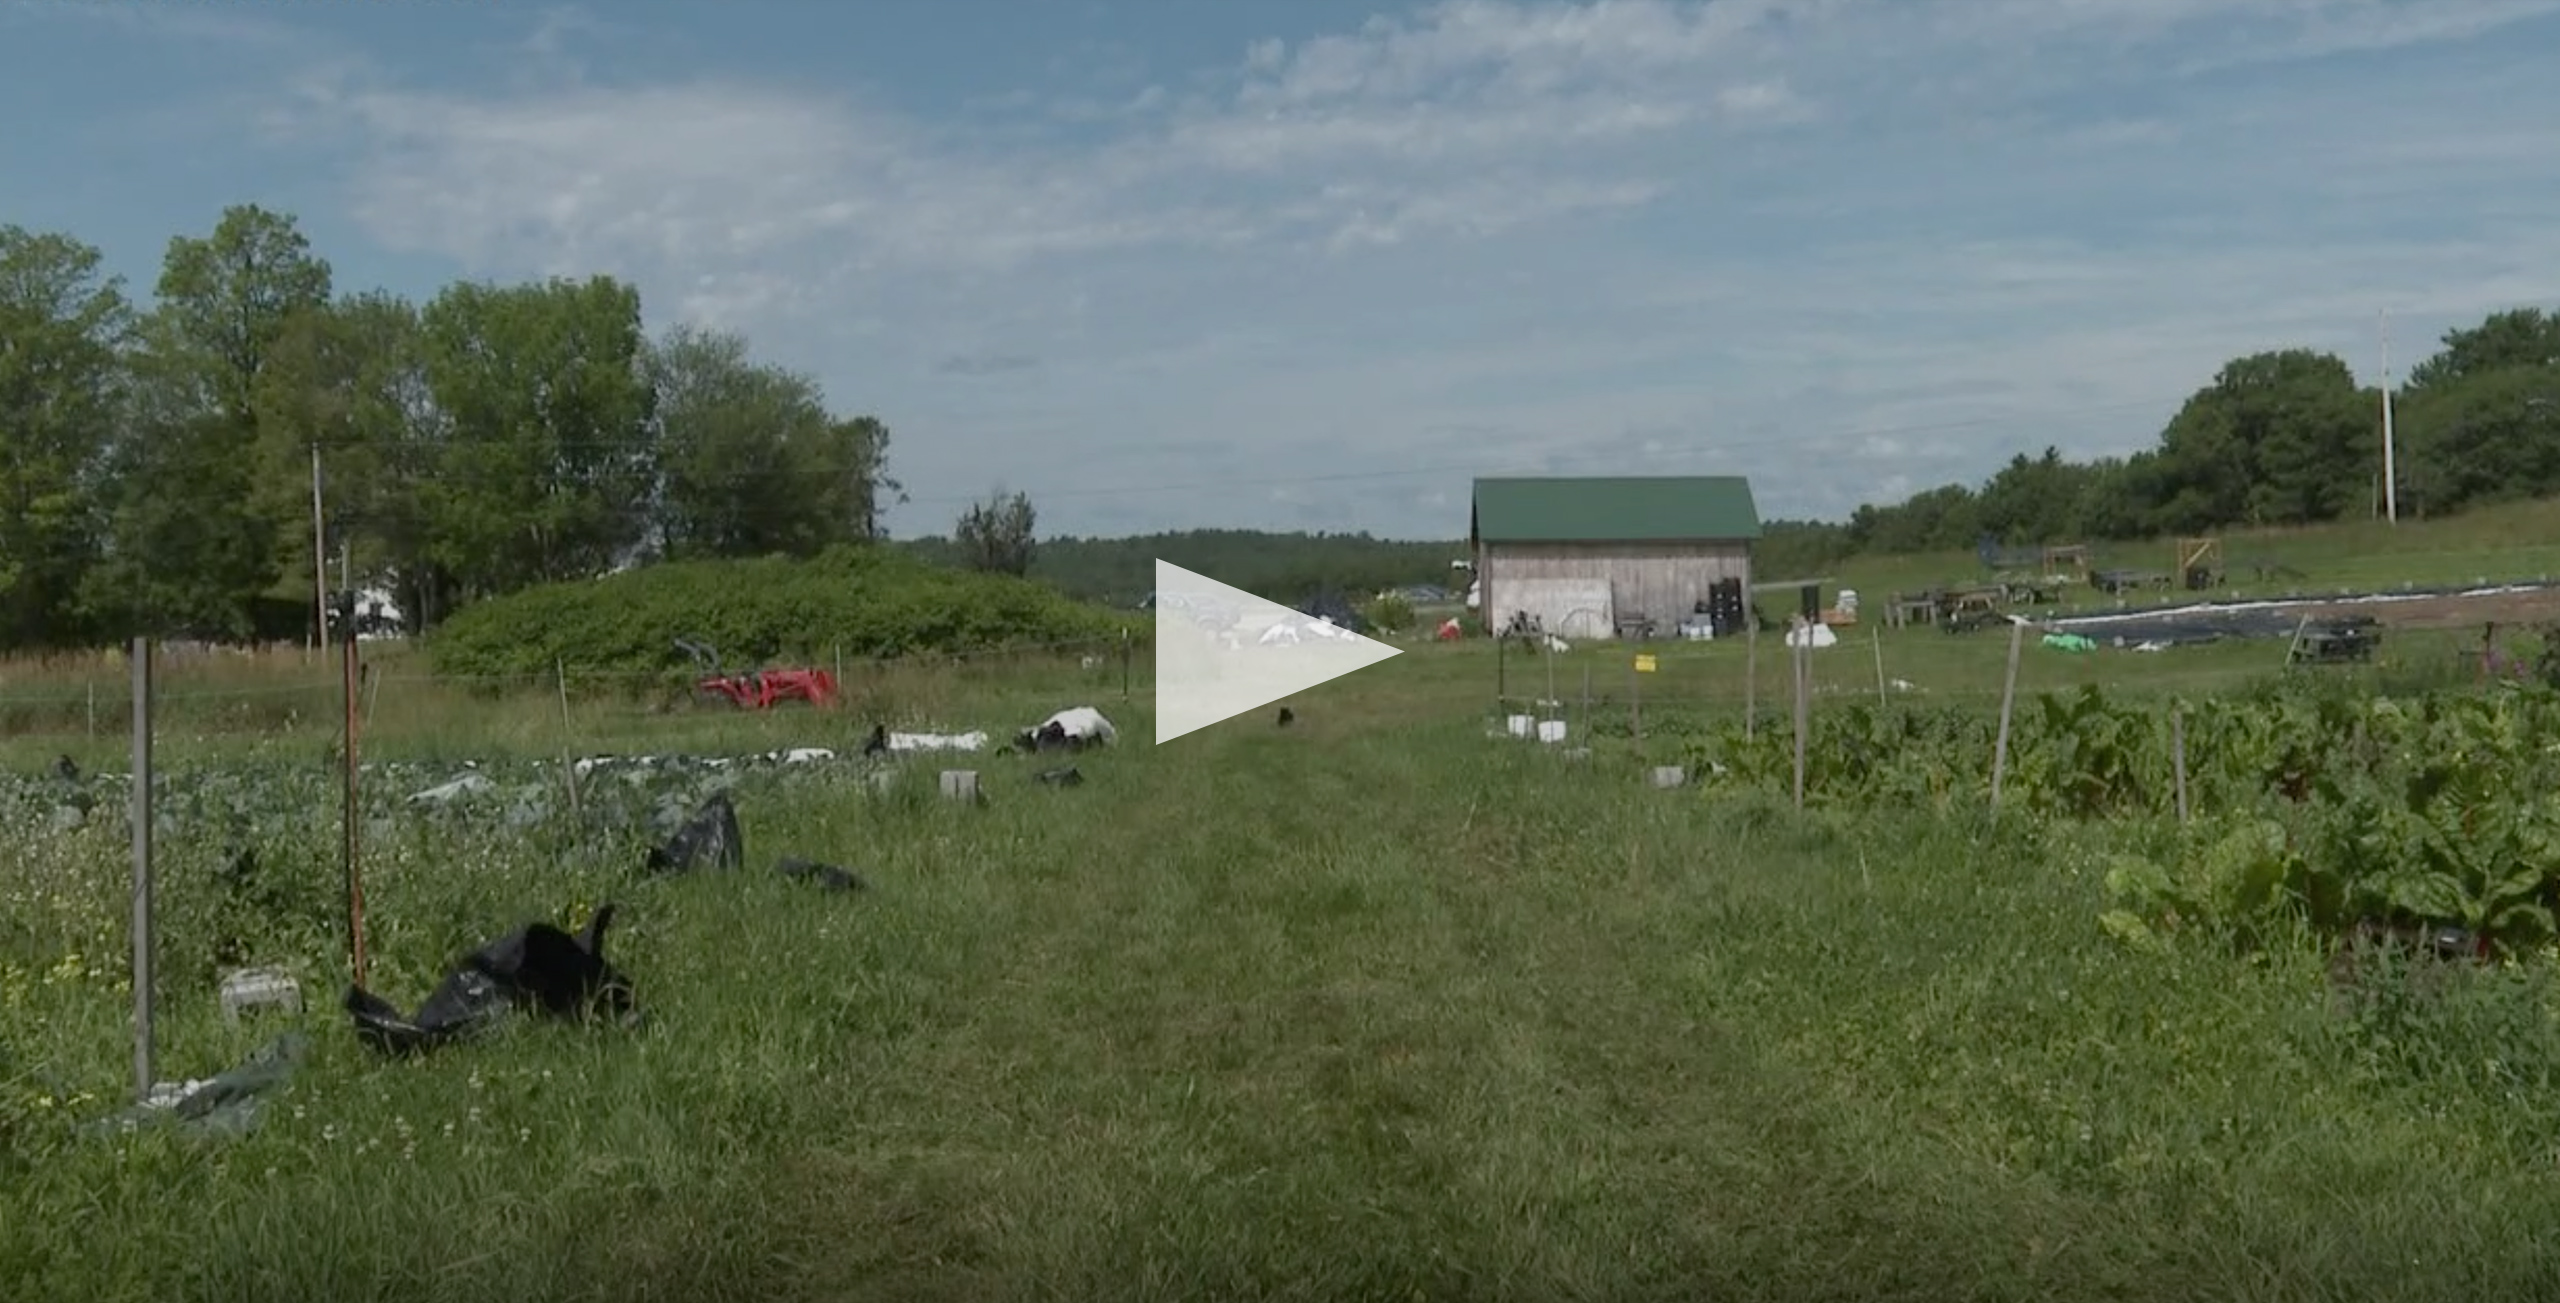 screenshot of farm from video